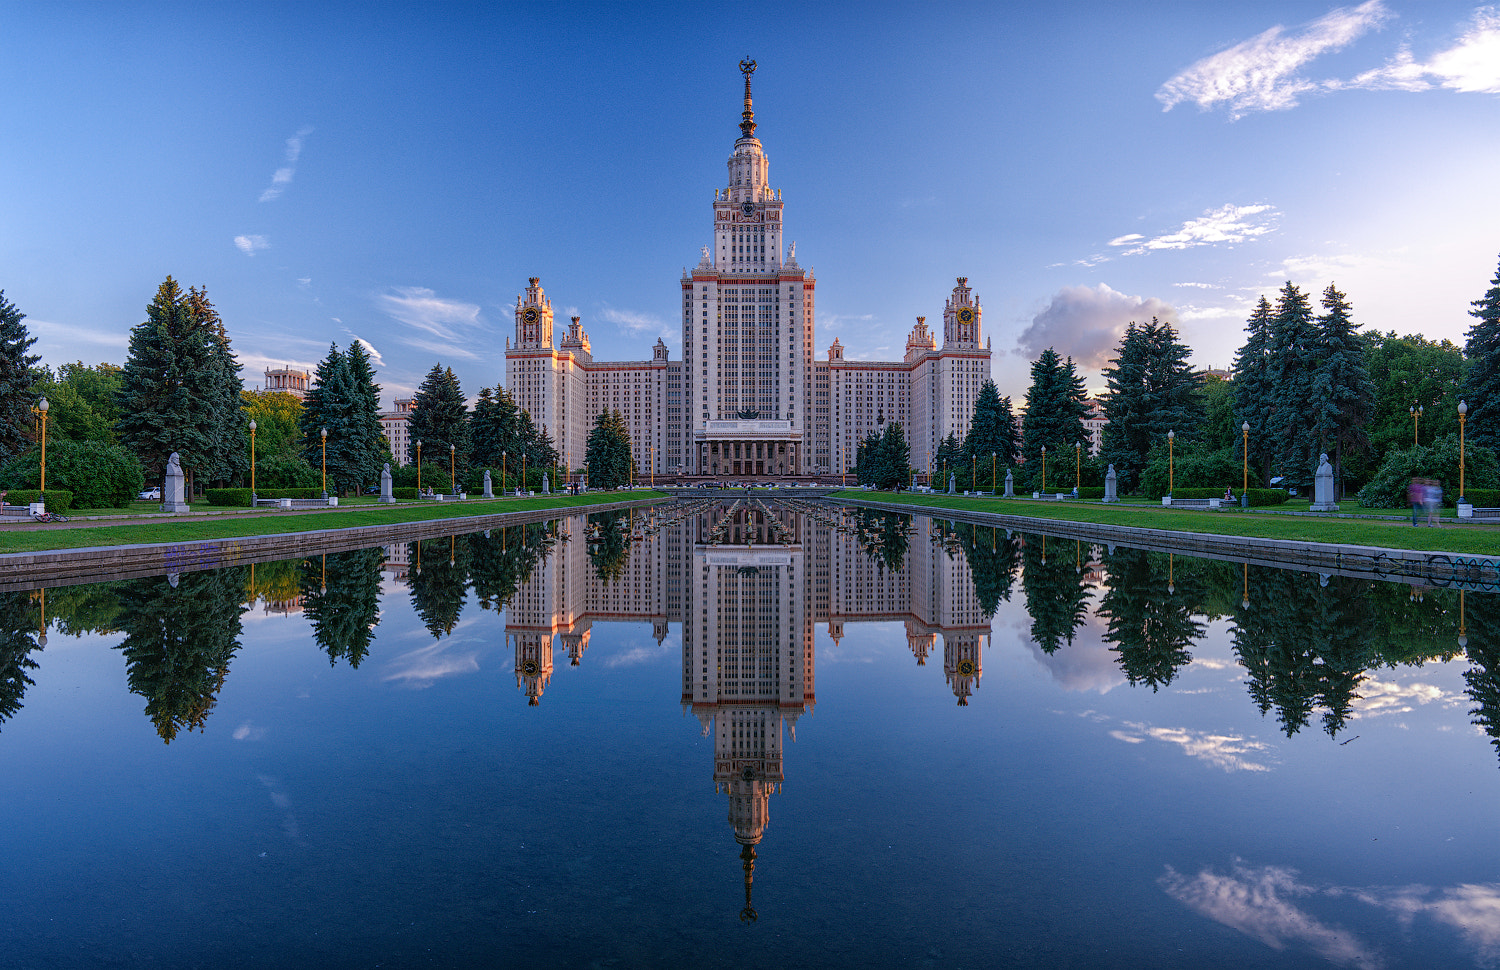 Photograph Moscow State University by Alexei Zaripov on 500px